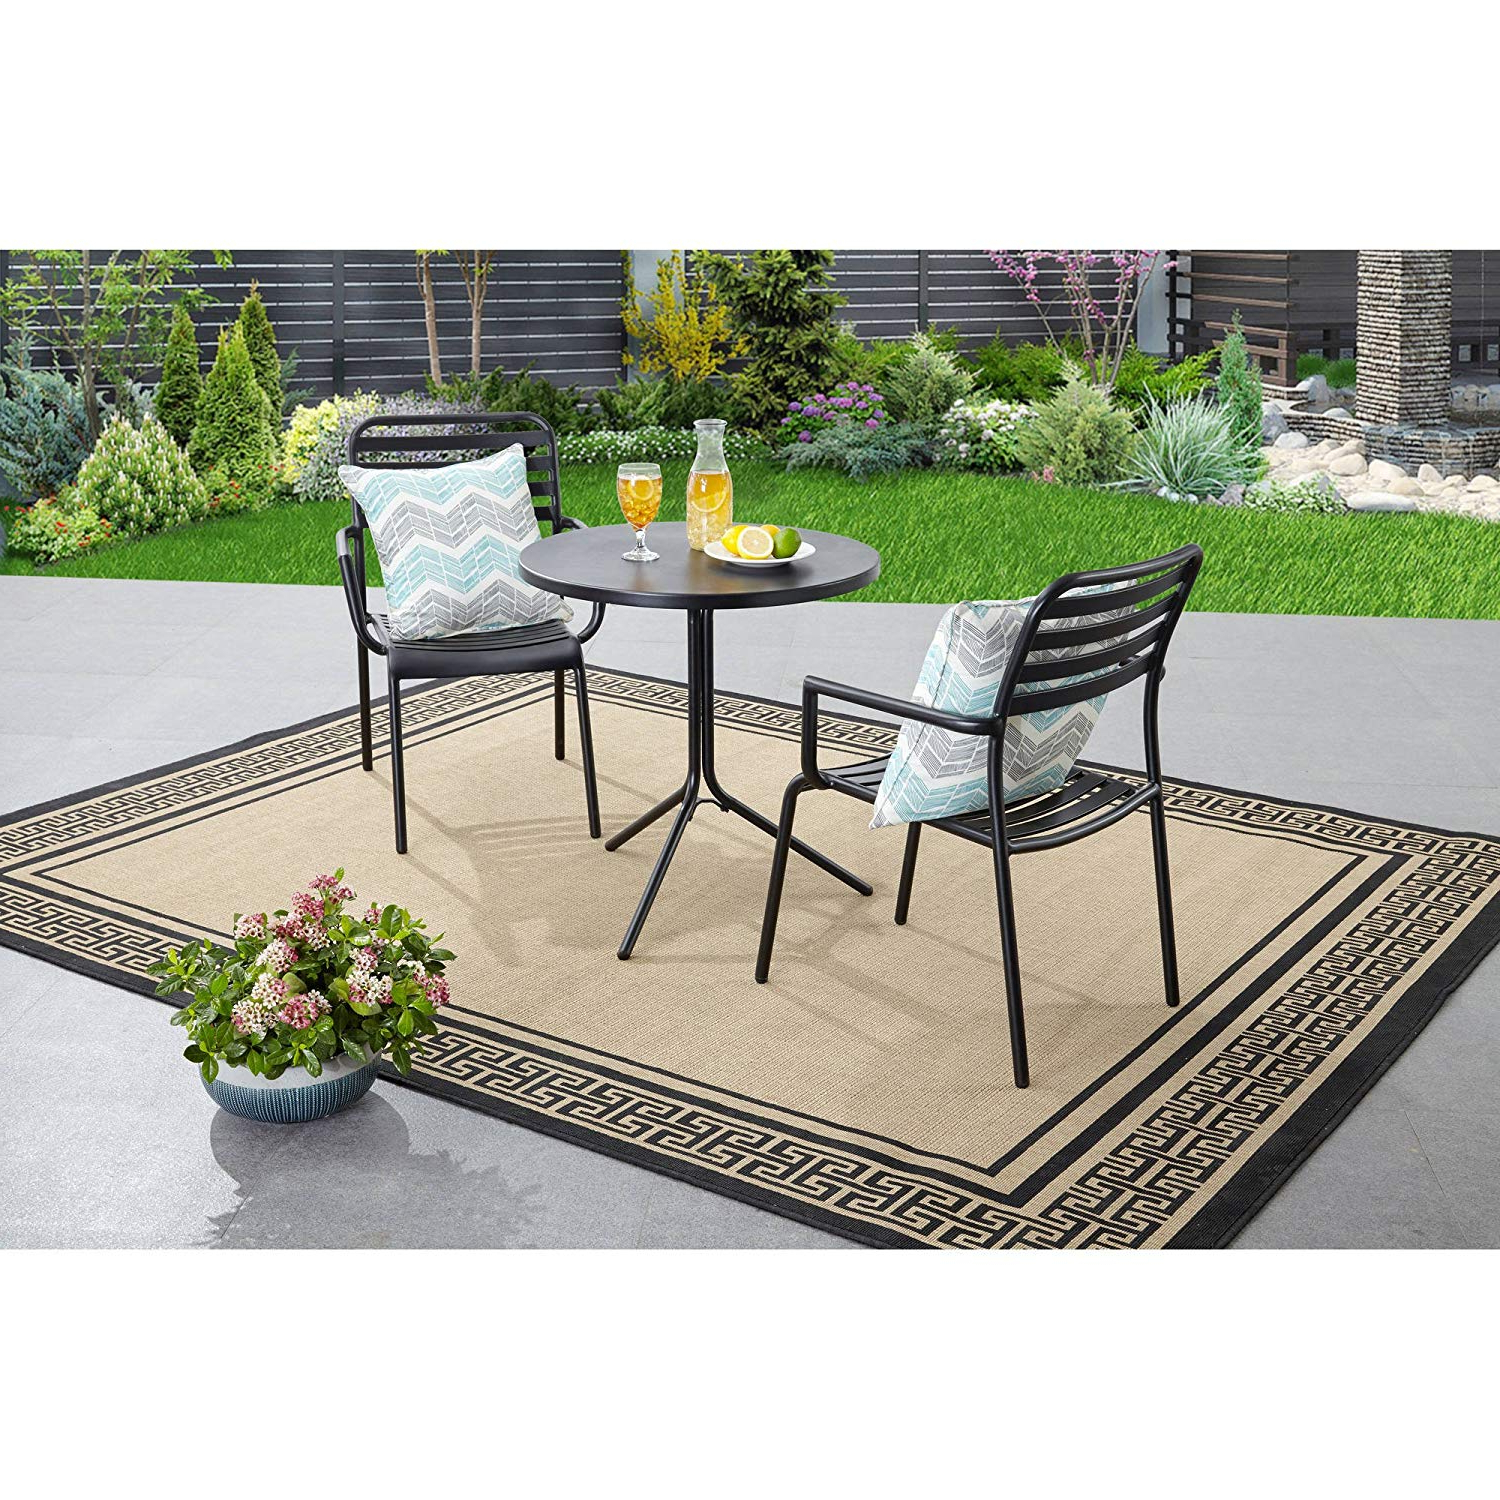 Tarleton 5 Piece Dining Sets In Fashionable Amazon : Better Homes And Gardens Tarleton 3 Piece Bistro Set (View 5 of 25)